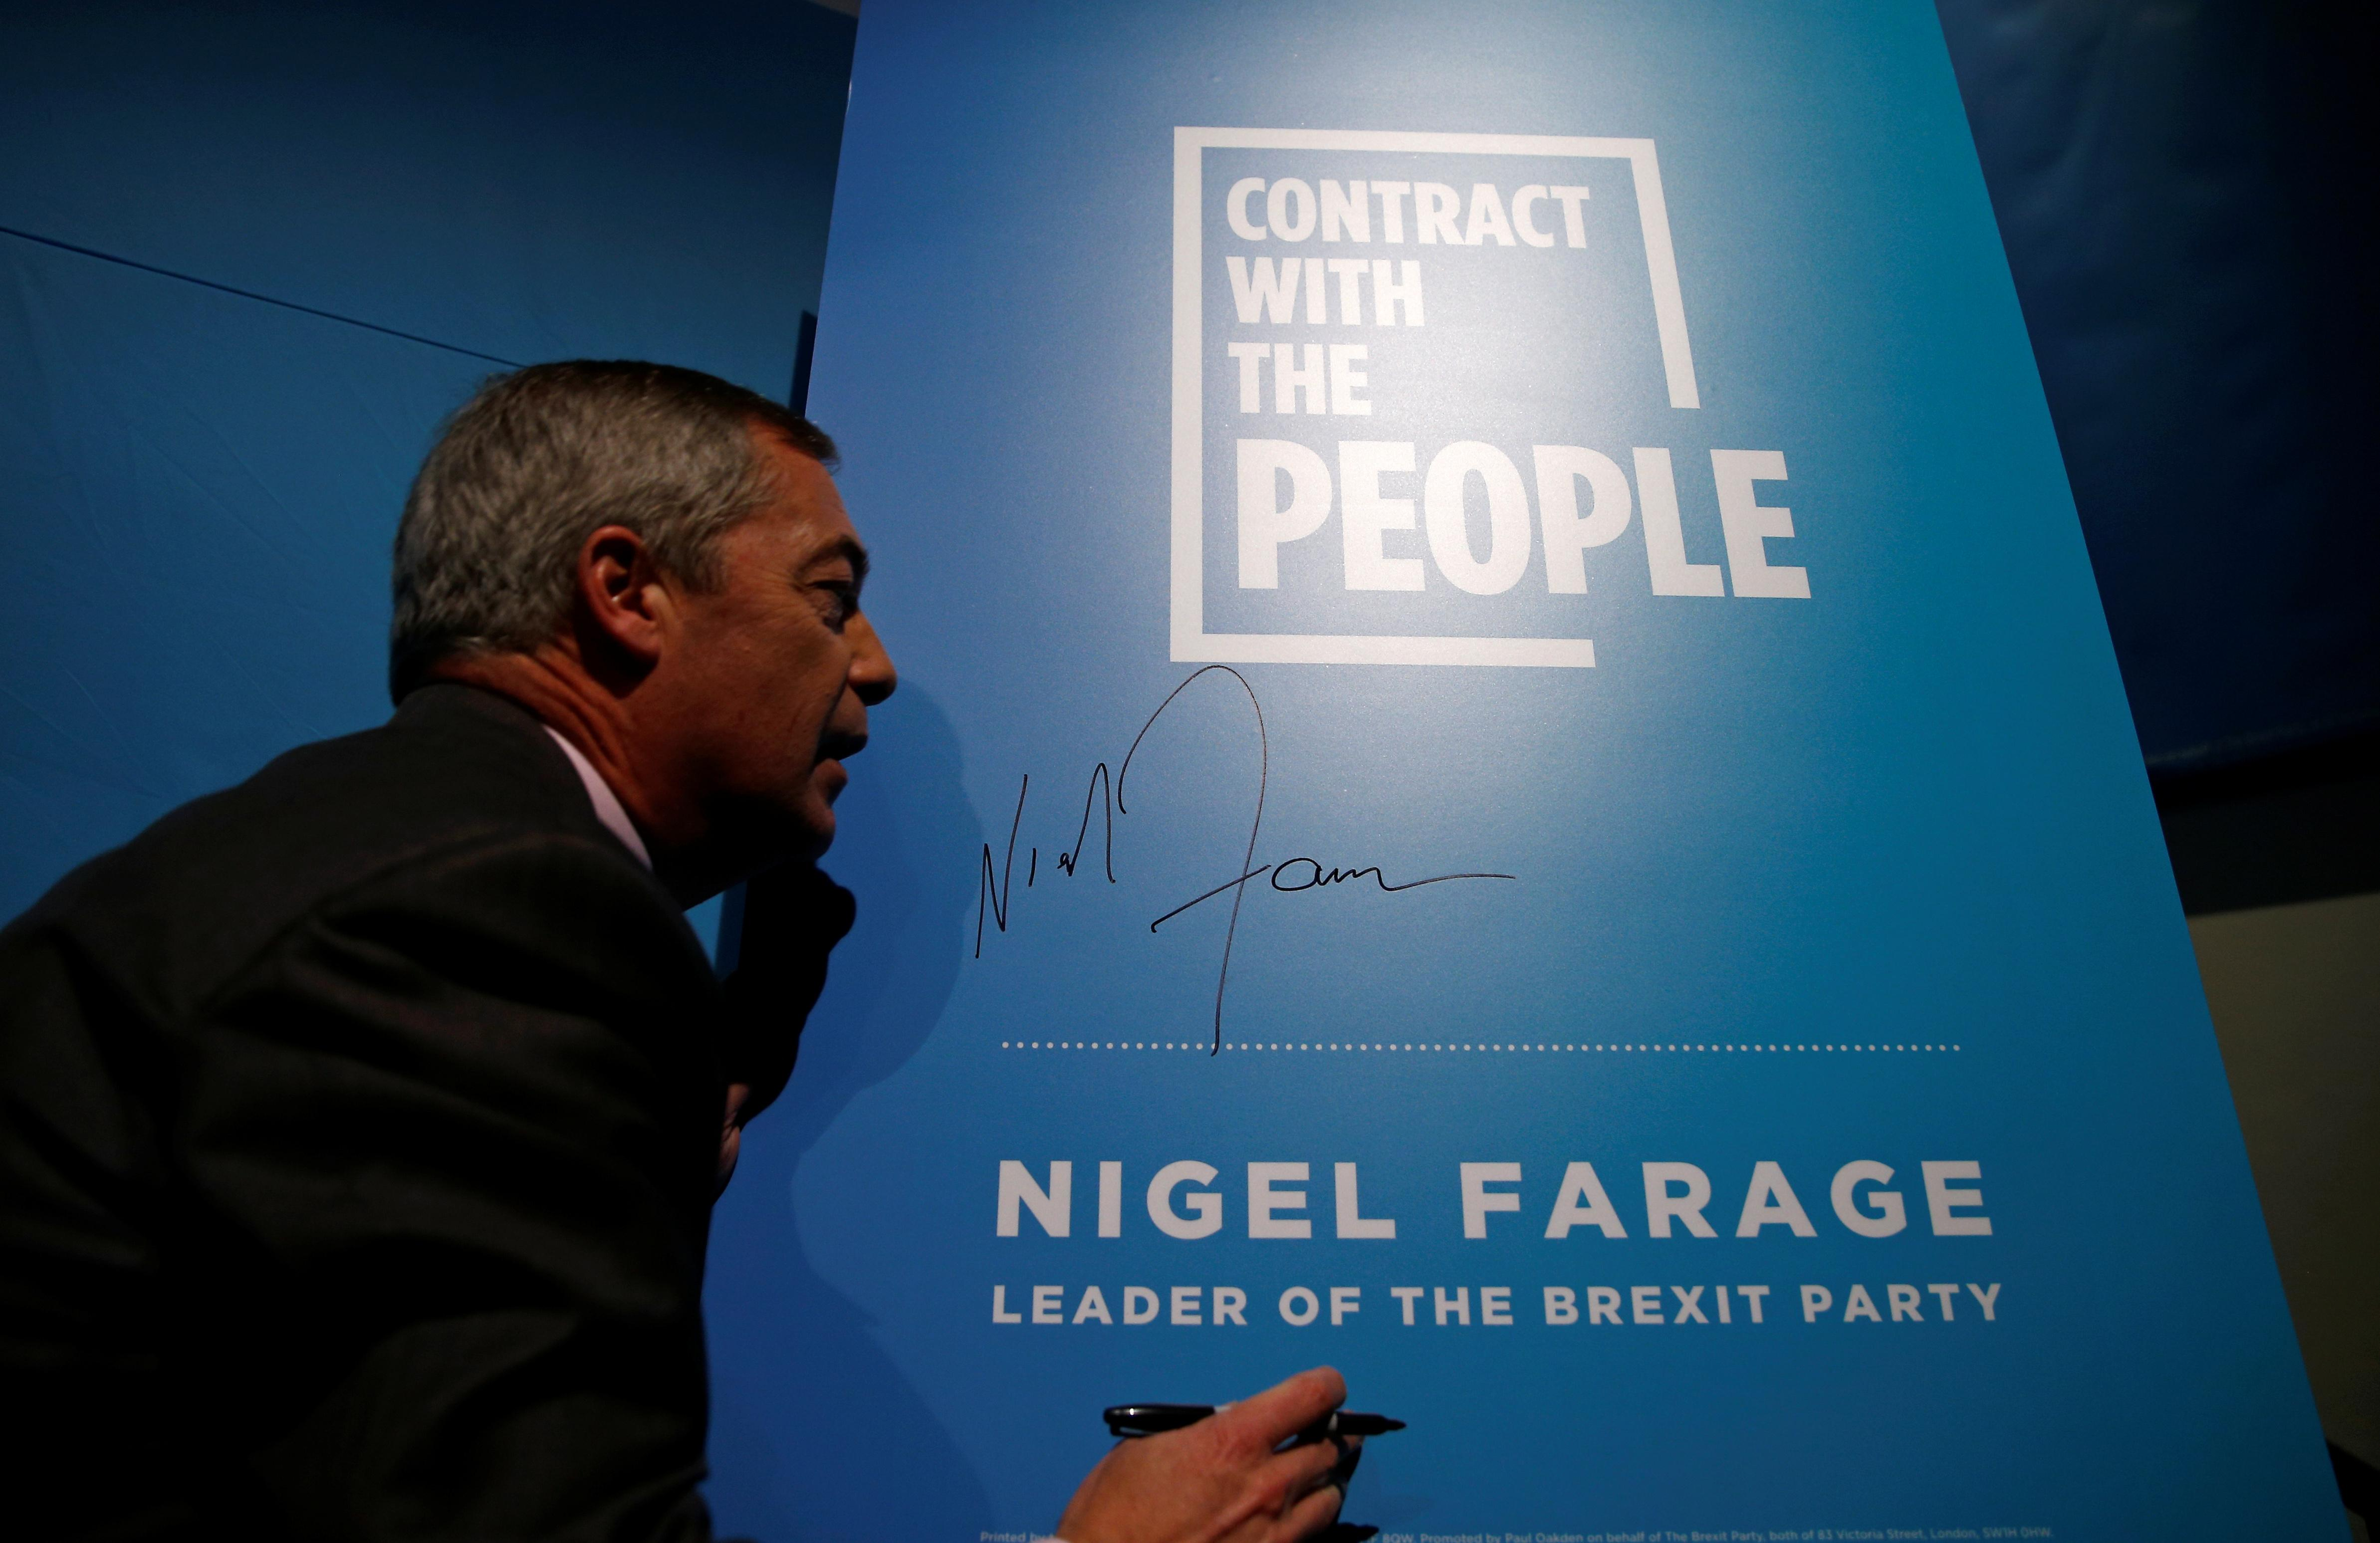 ON THE CAMPAIGN TRAIL - Nigel Farage signs contract with voters